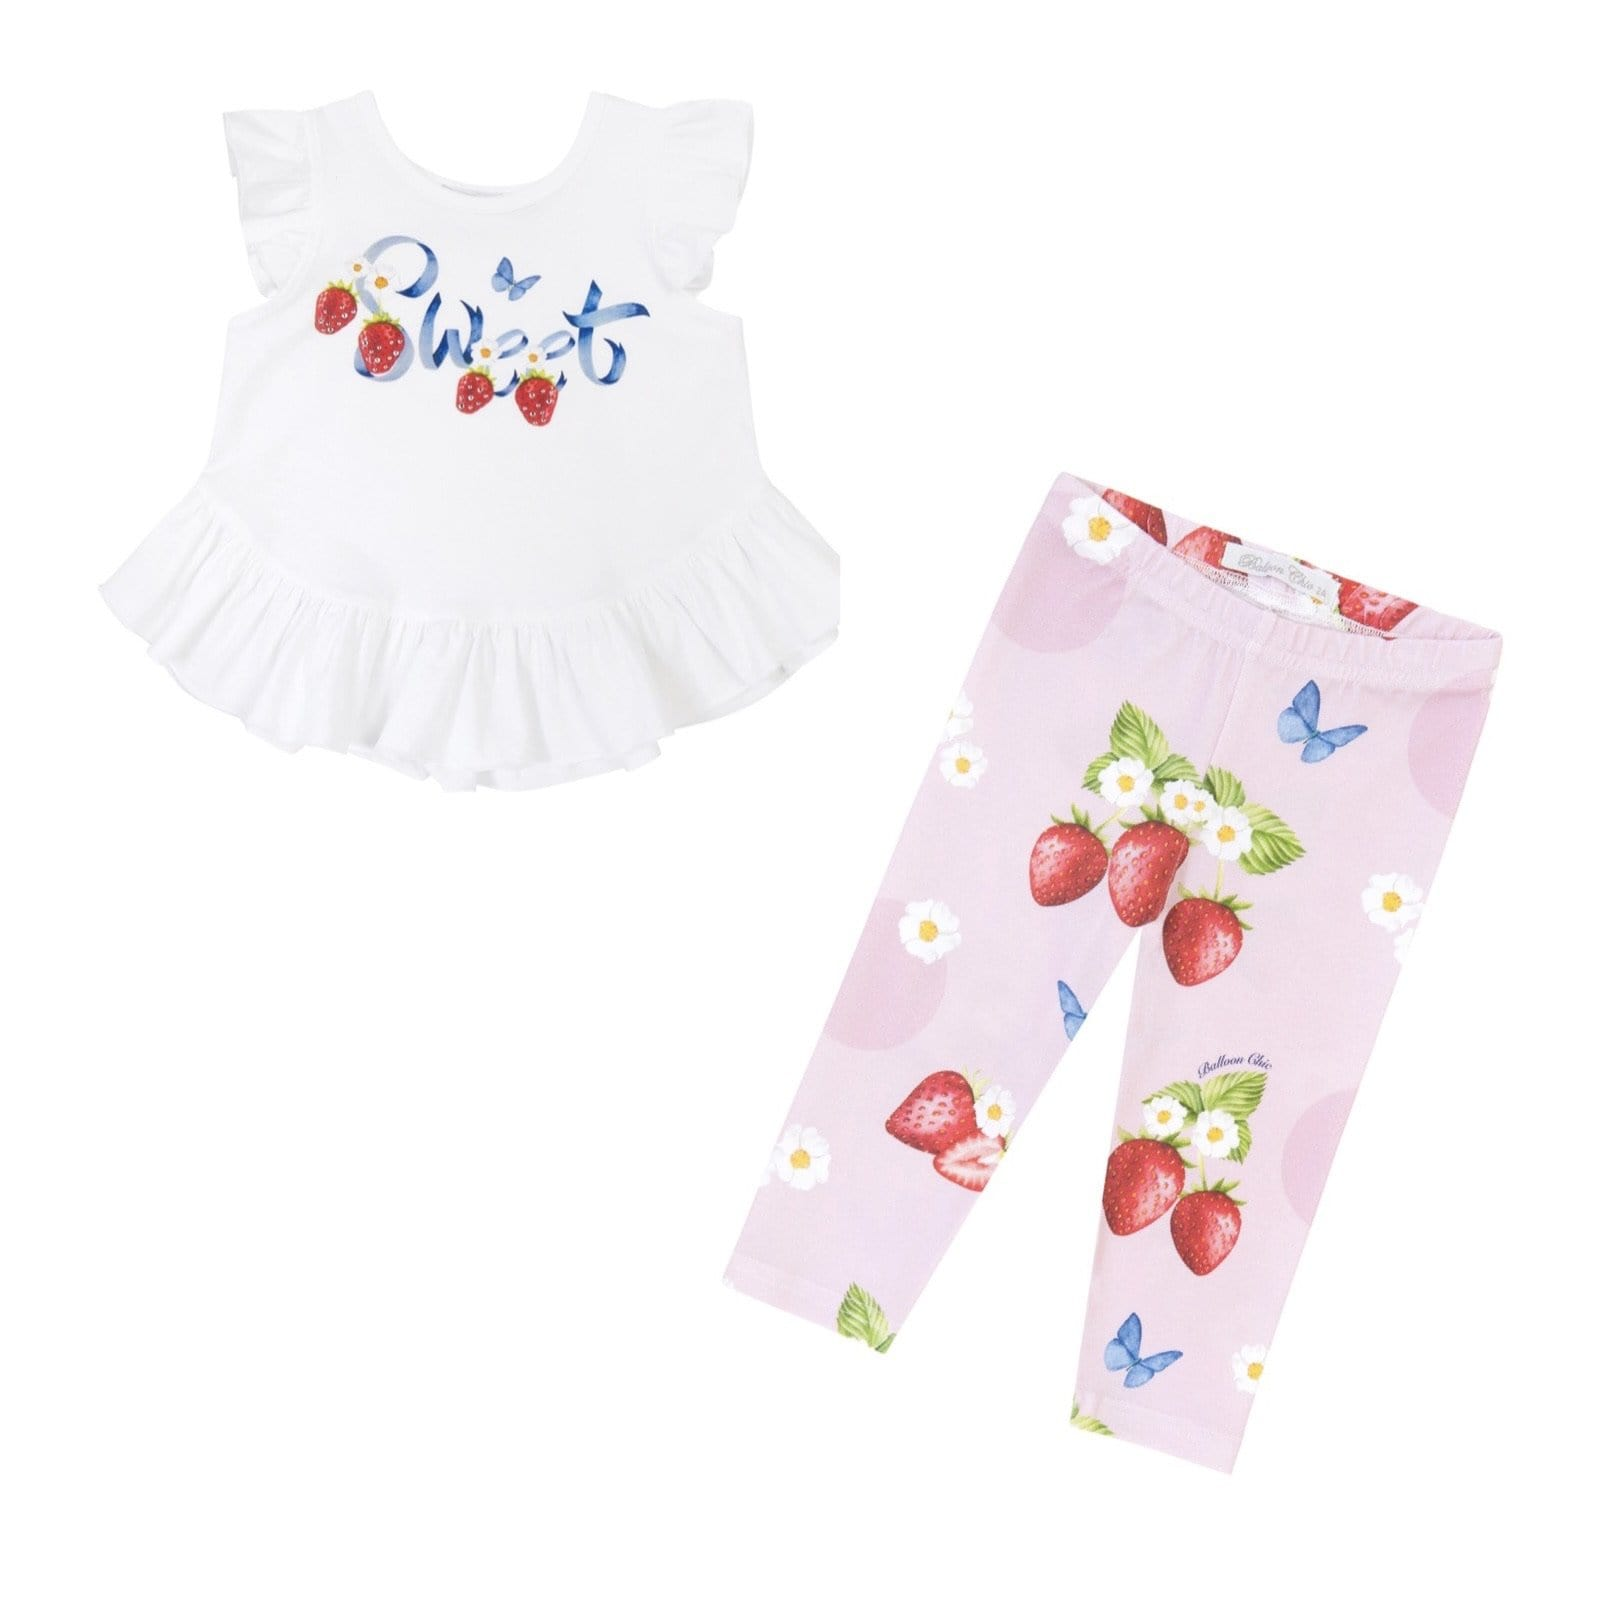 PRE ORDER BALLOON CHIC STRAWBERRY LEGGINGS SET